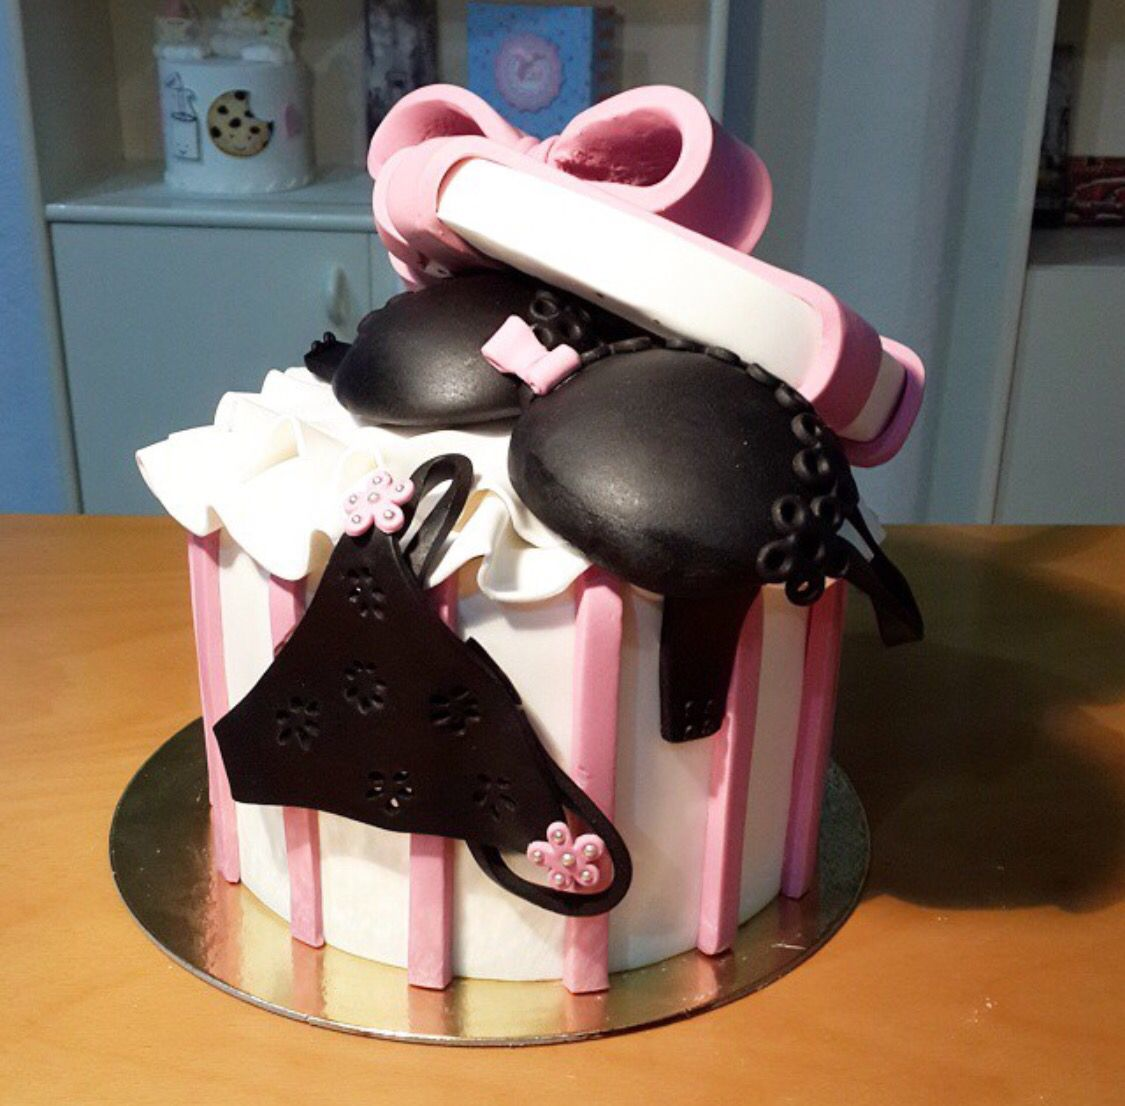 Gift box cake underwear bra chic pink white ribbon chocolate